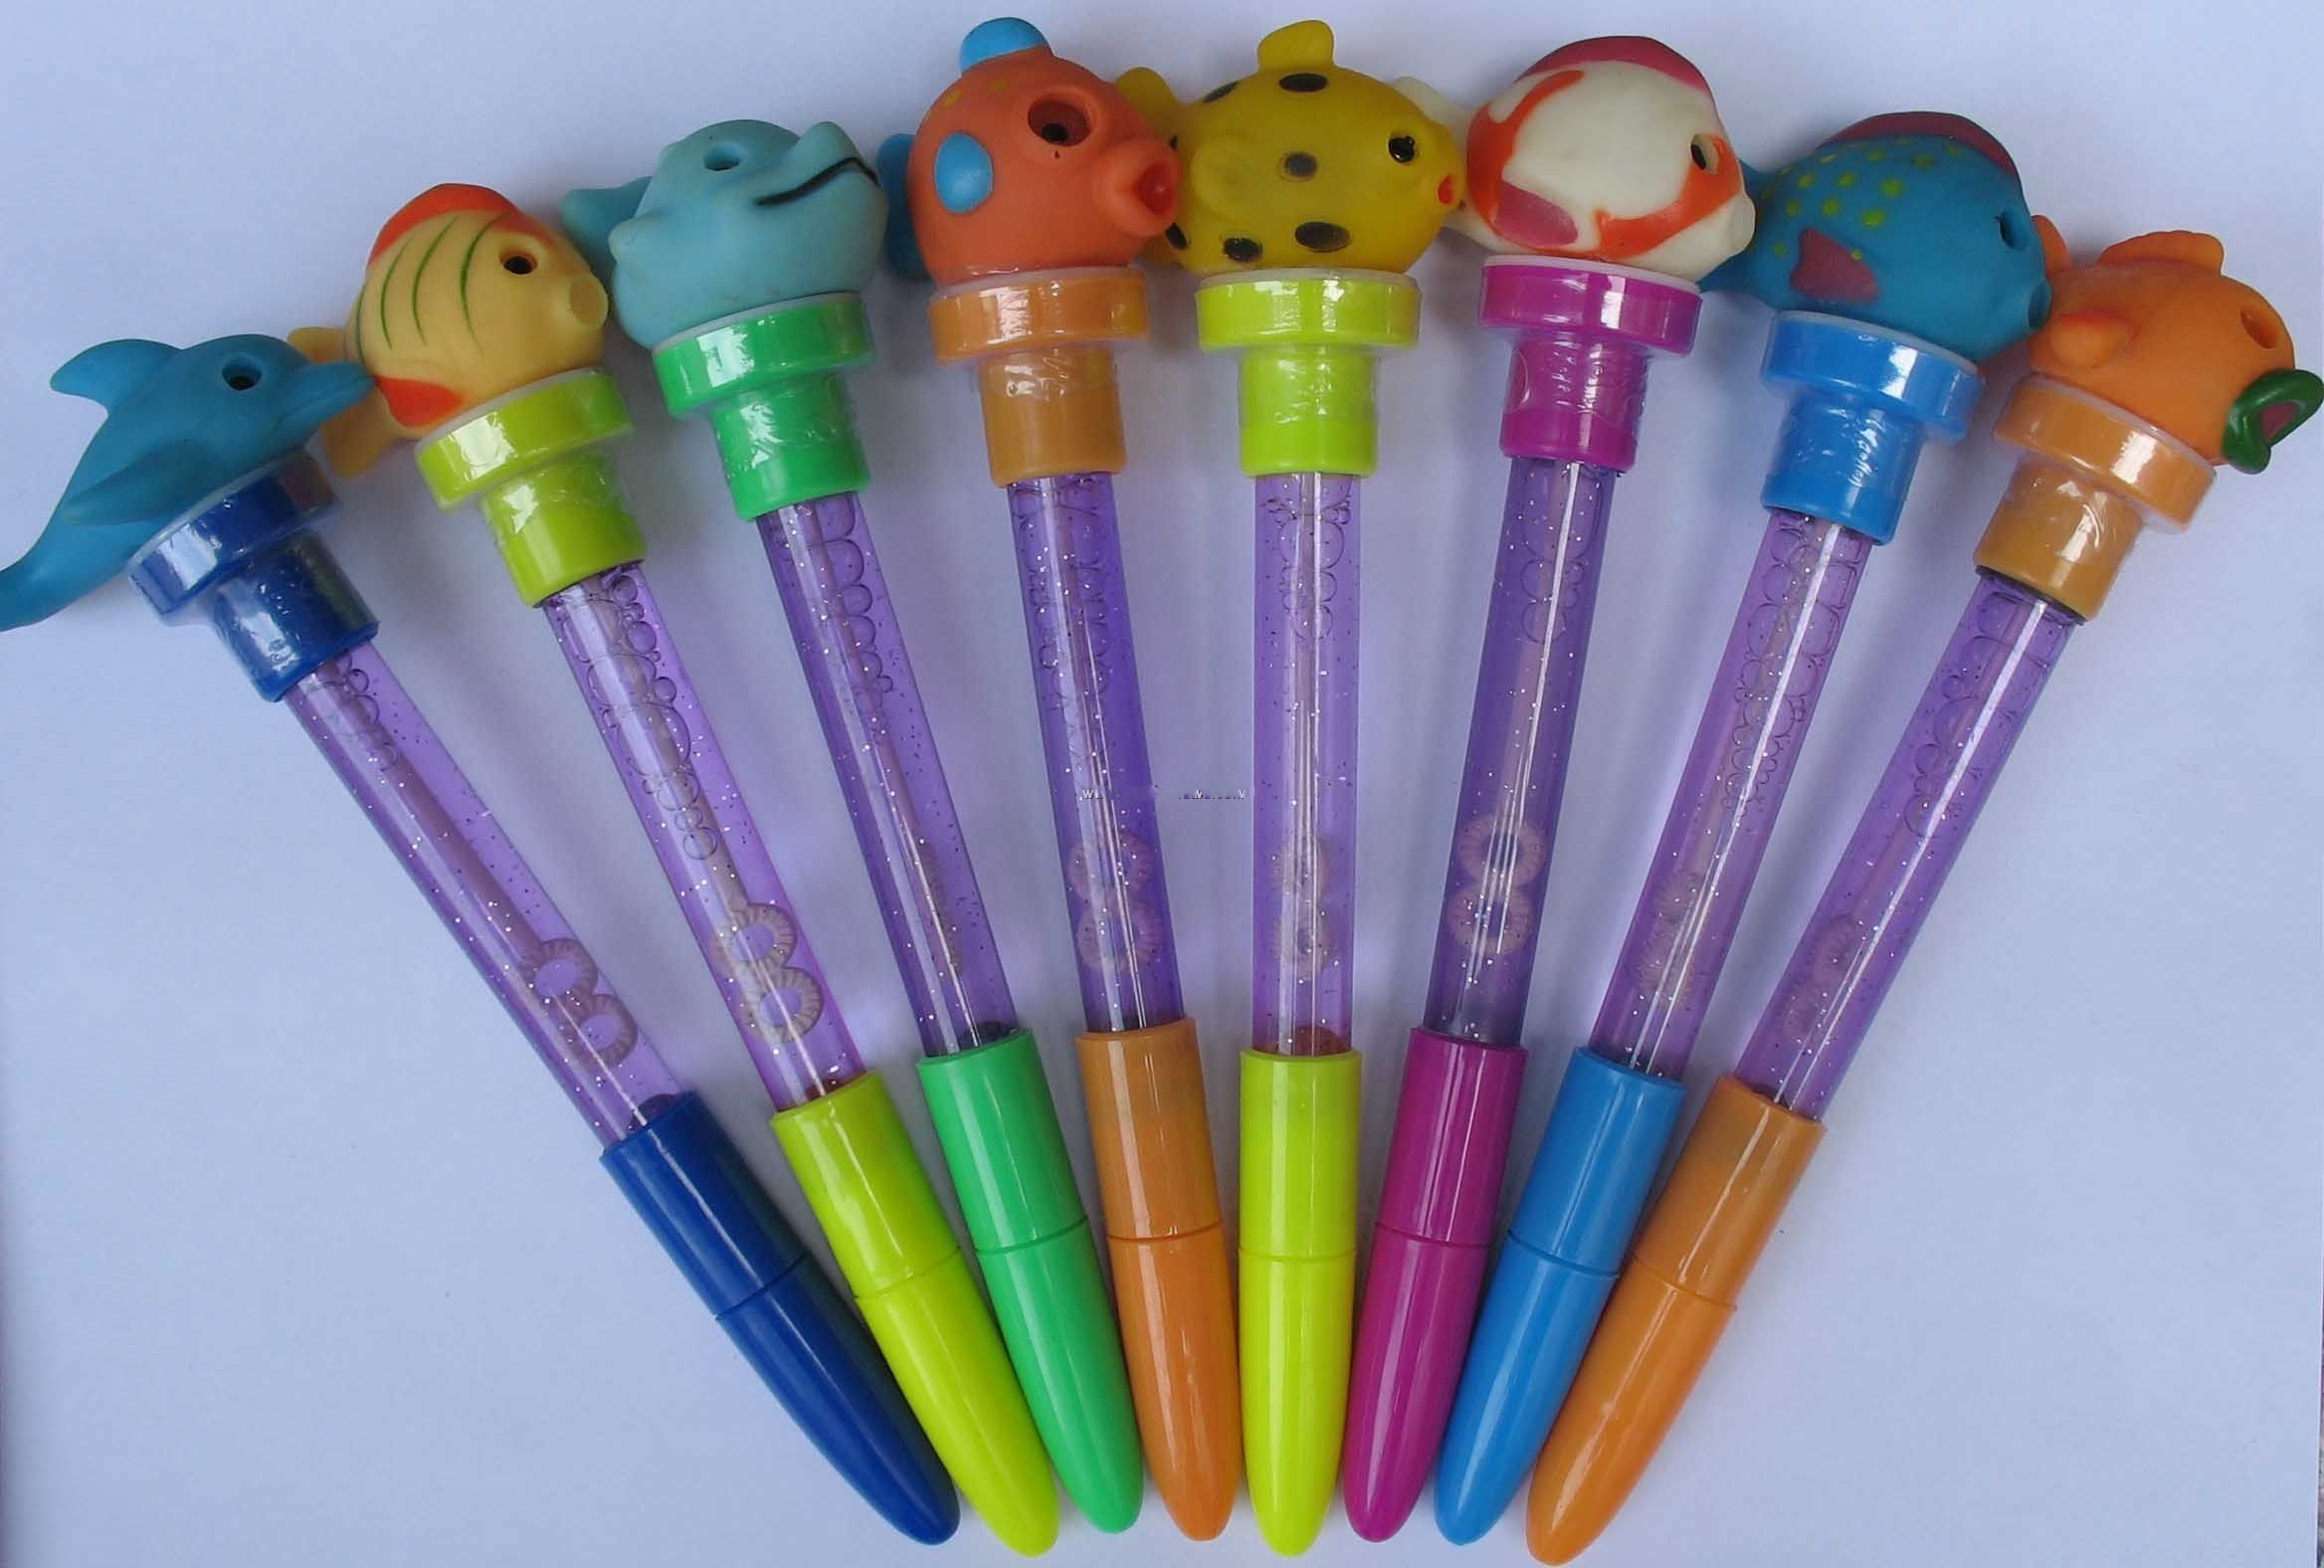 Cartoon flash pen with Bubble